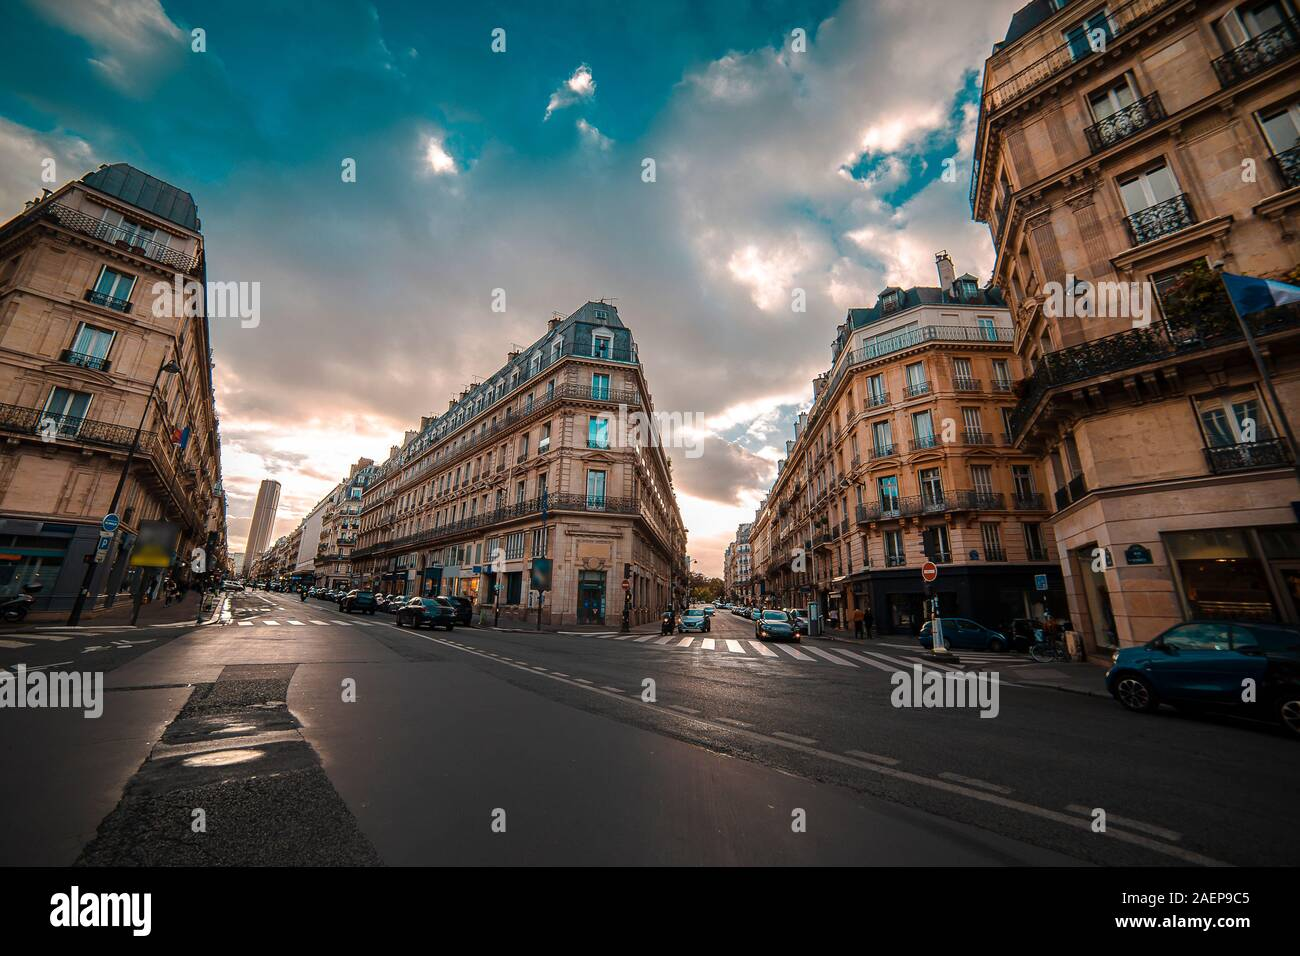 Paris Aesthetic High Resolution Stock Photography And Images Alamy